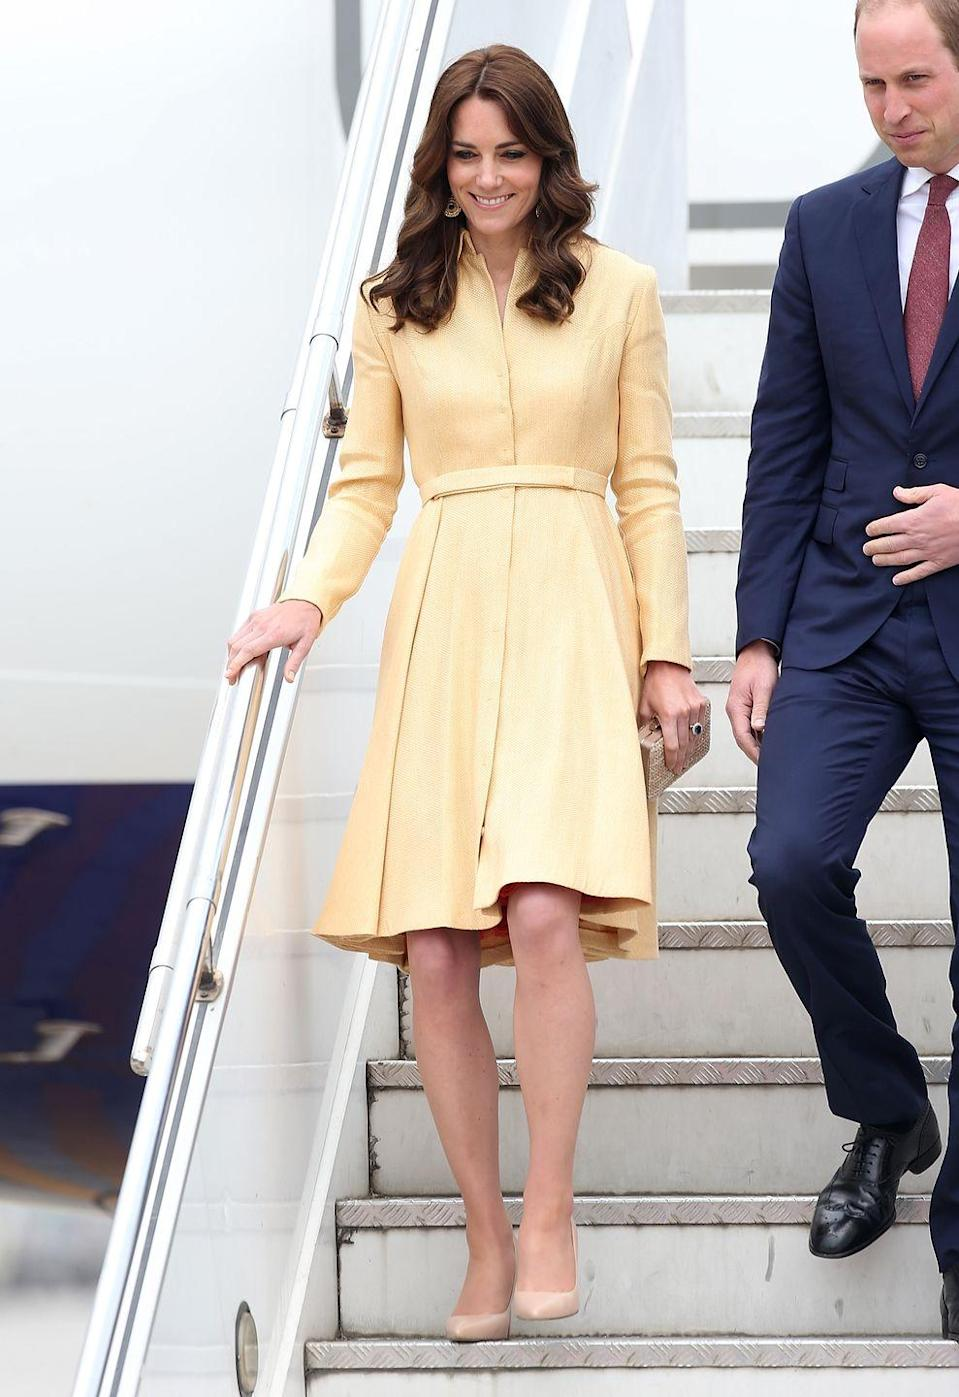 <p>It took four years for Kate to rewear the coat dress, but she did it! She stepped off the plane in Thimphu, Bhutan, to greet her hosts wearing sunny yellow. </p>